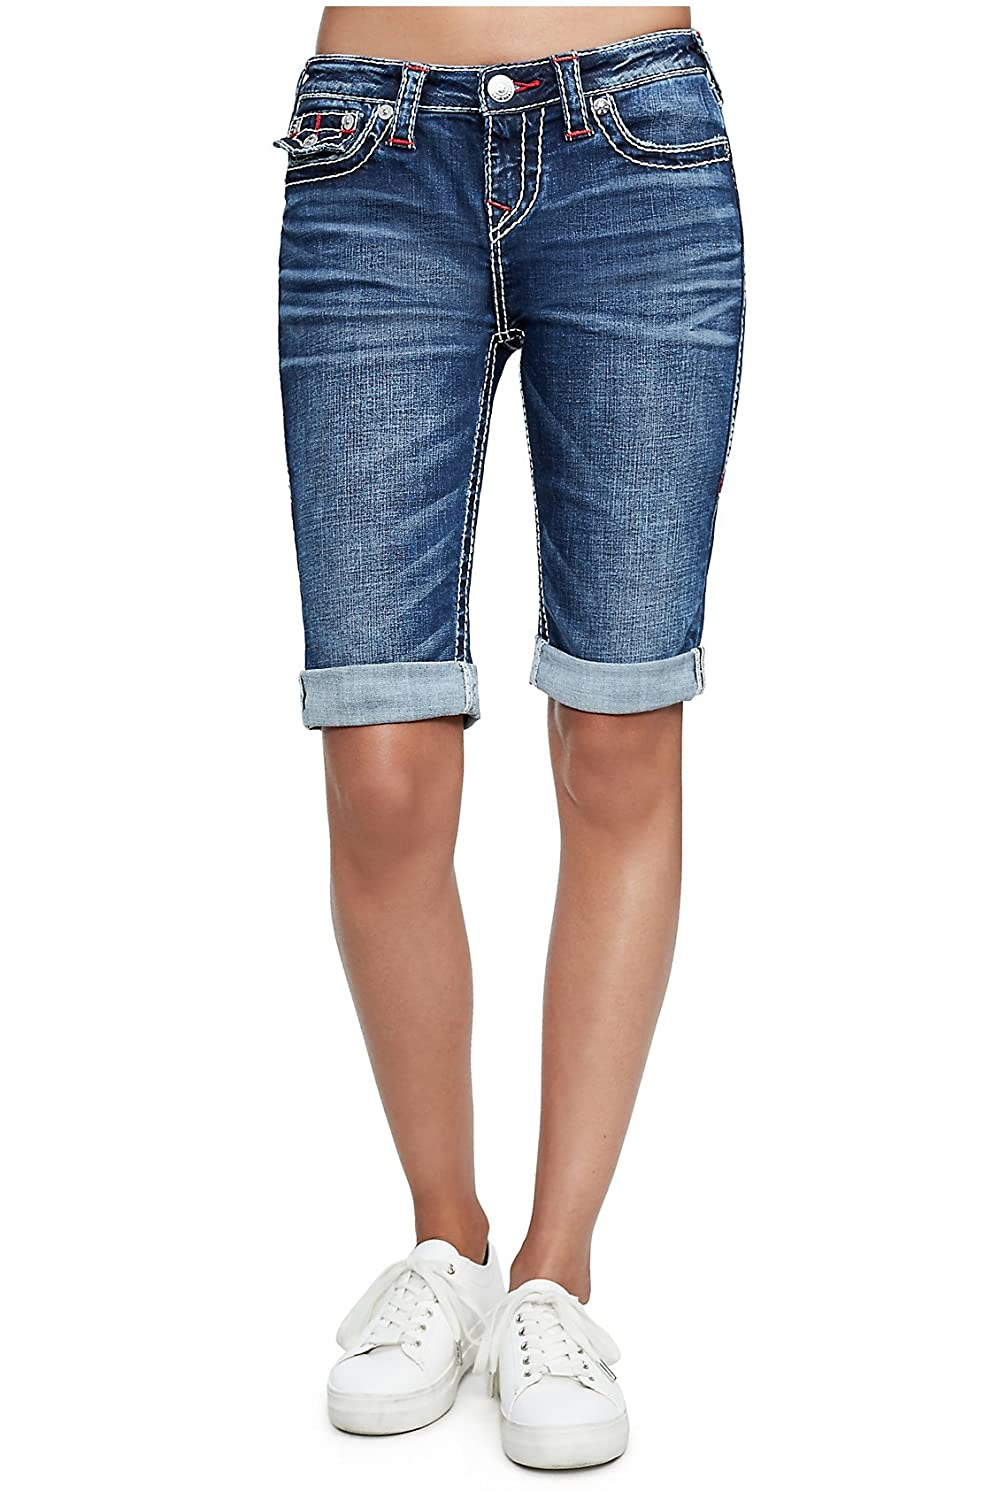 f9eb1579be Amazon.com: True Religion Women's Big T Bermuda Jean Shorts w/Flap Pockets  in Magnetic Lure: Clothing